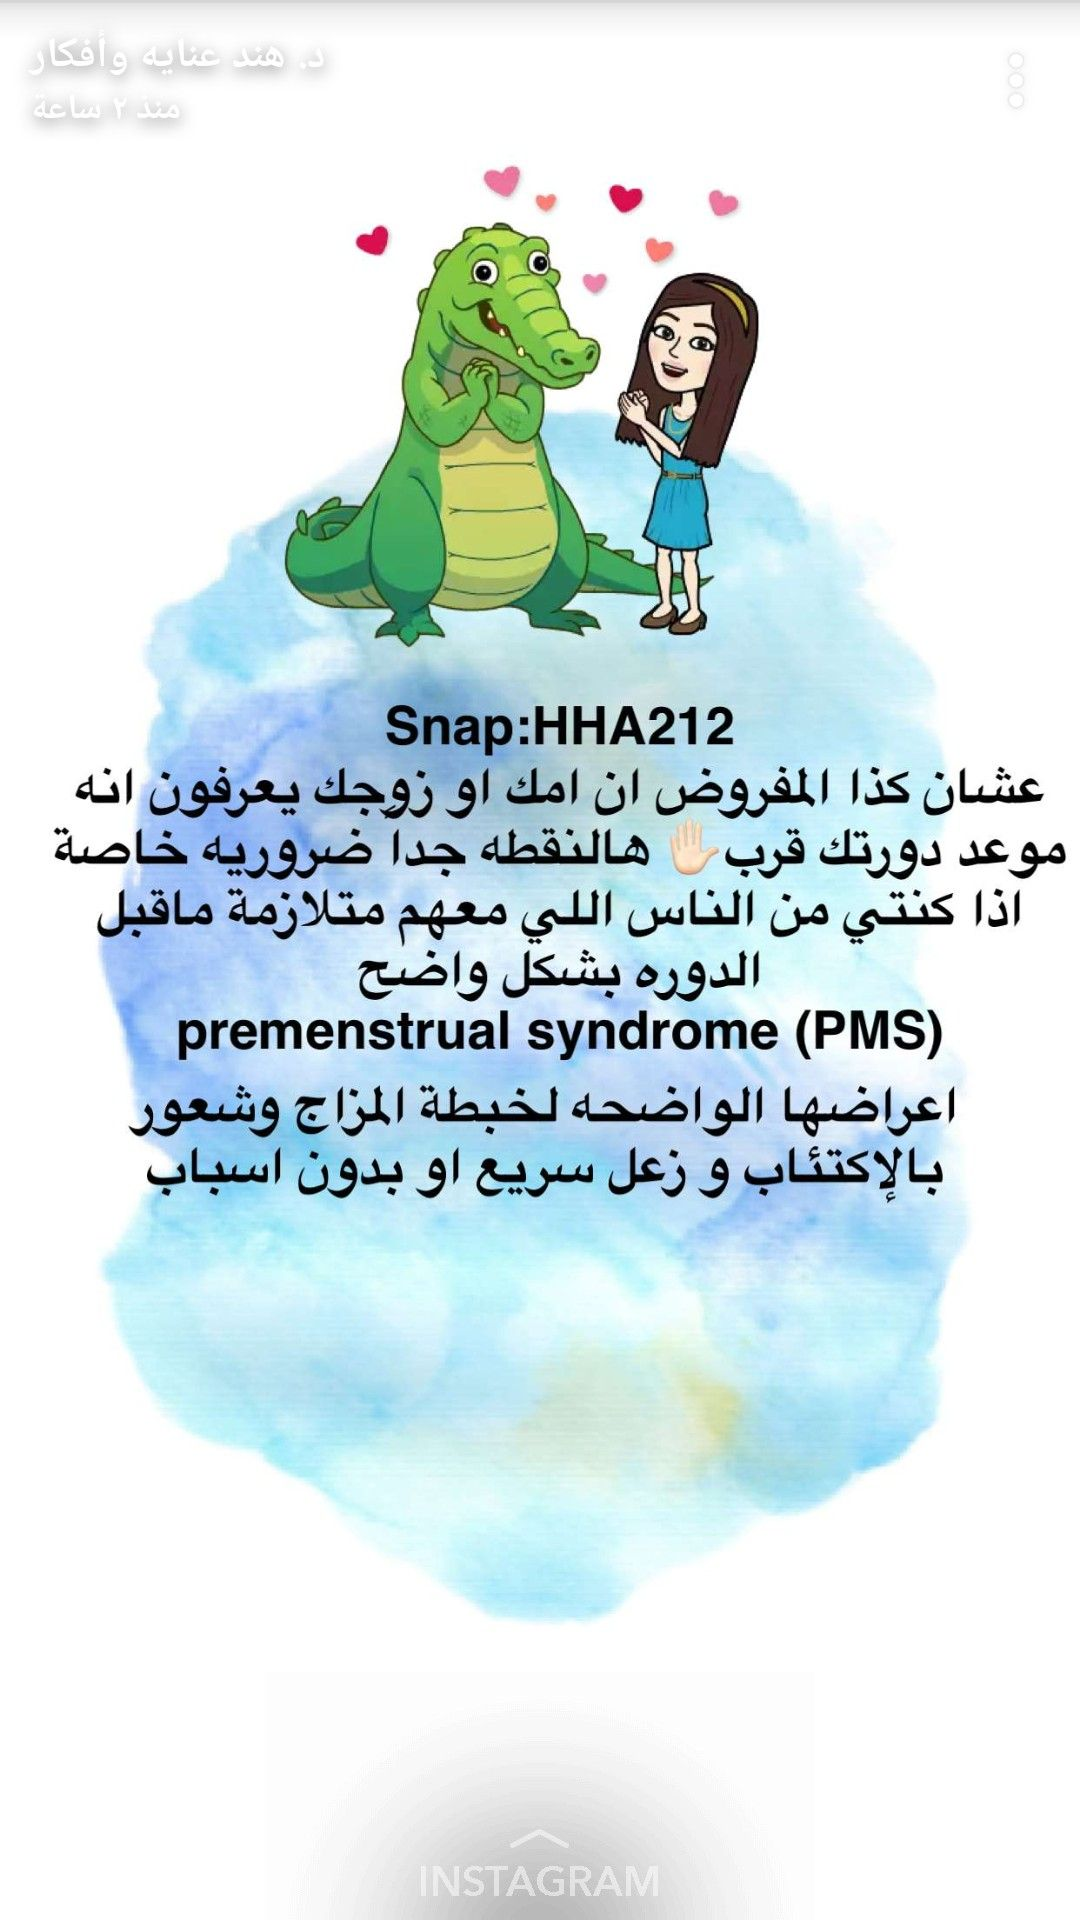 Pin By وهم On د هند عنايه وأفكار Photo Quotes Life Habits Premenstrual Syndrome